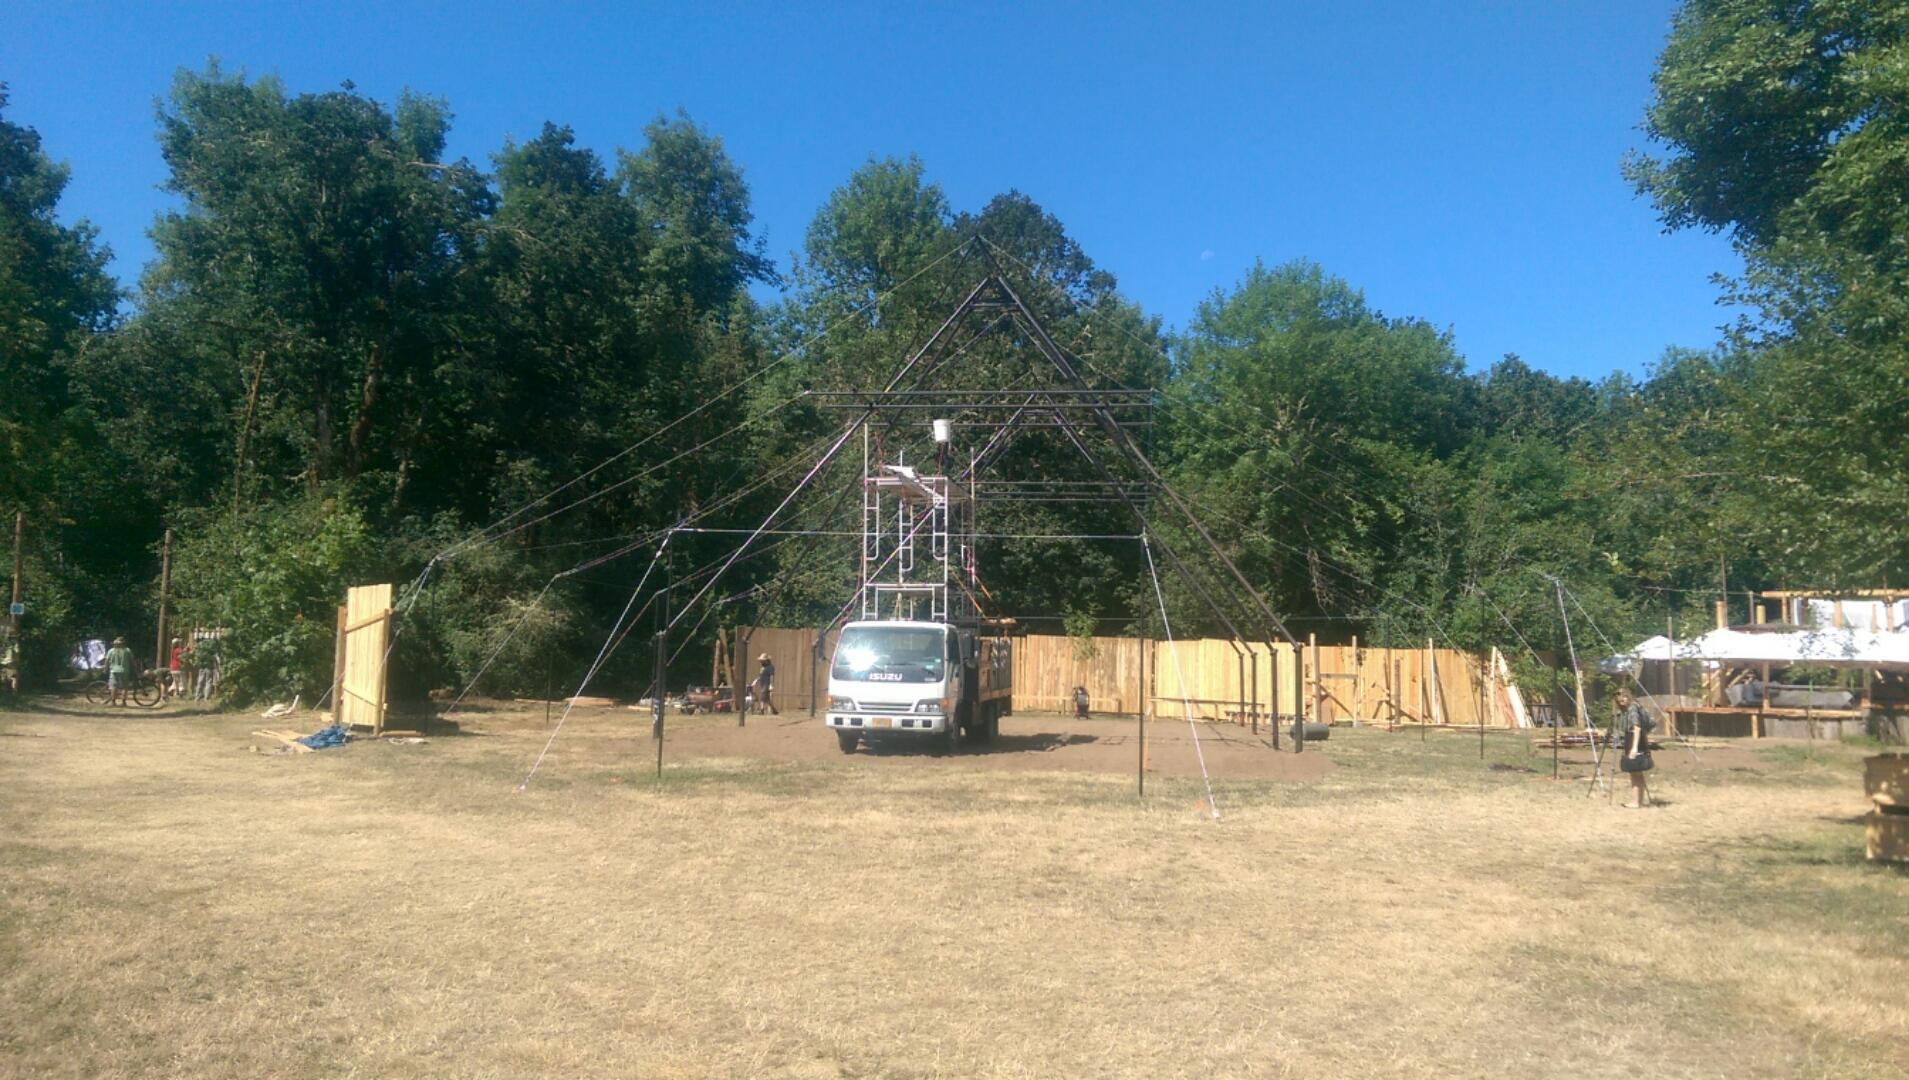 The Oregon Country Fair Will Have More Space This Year | KLCC